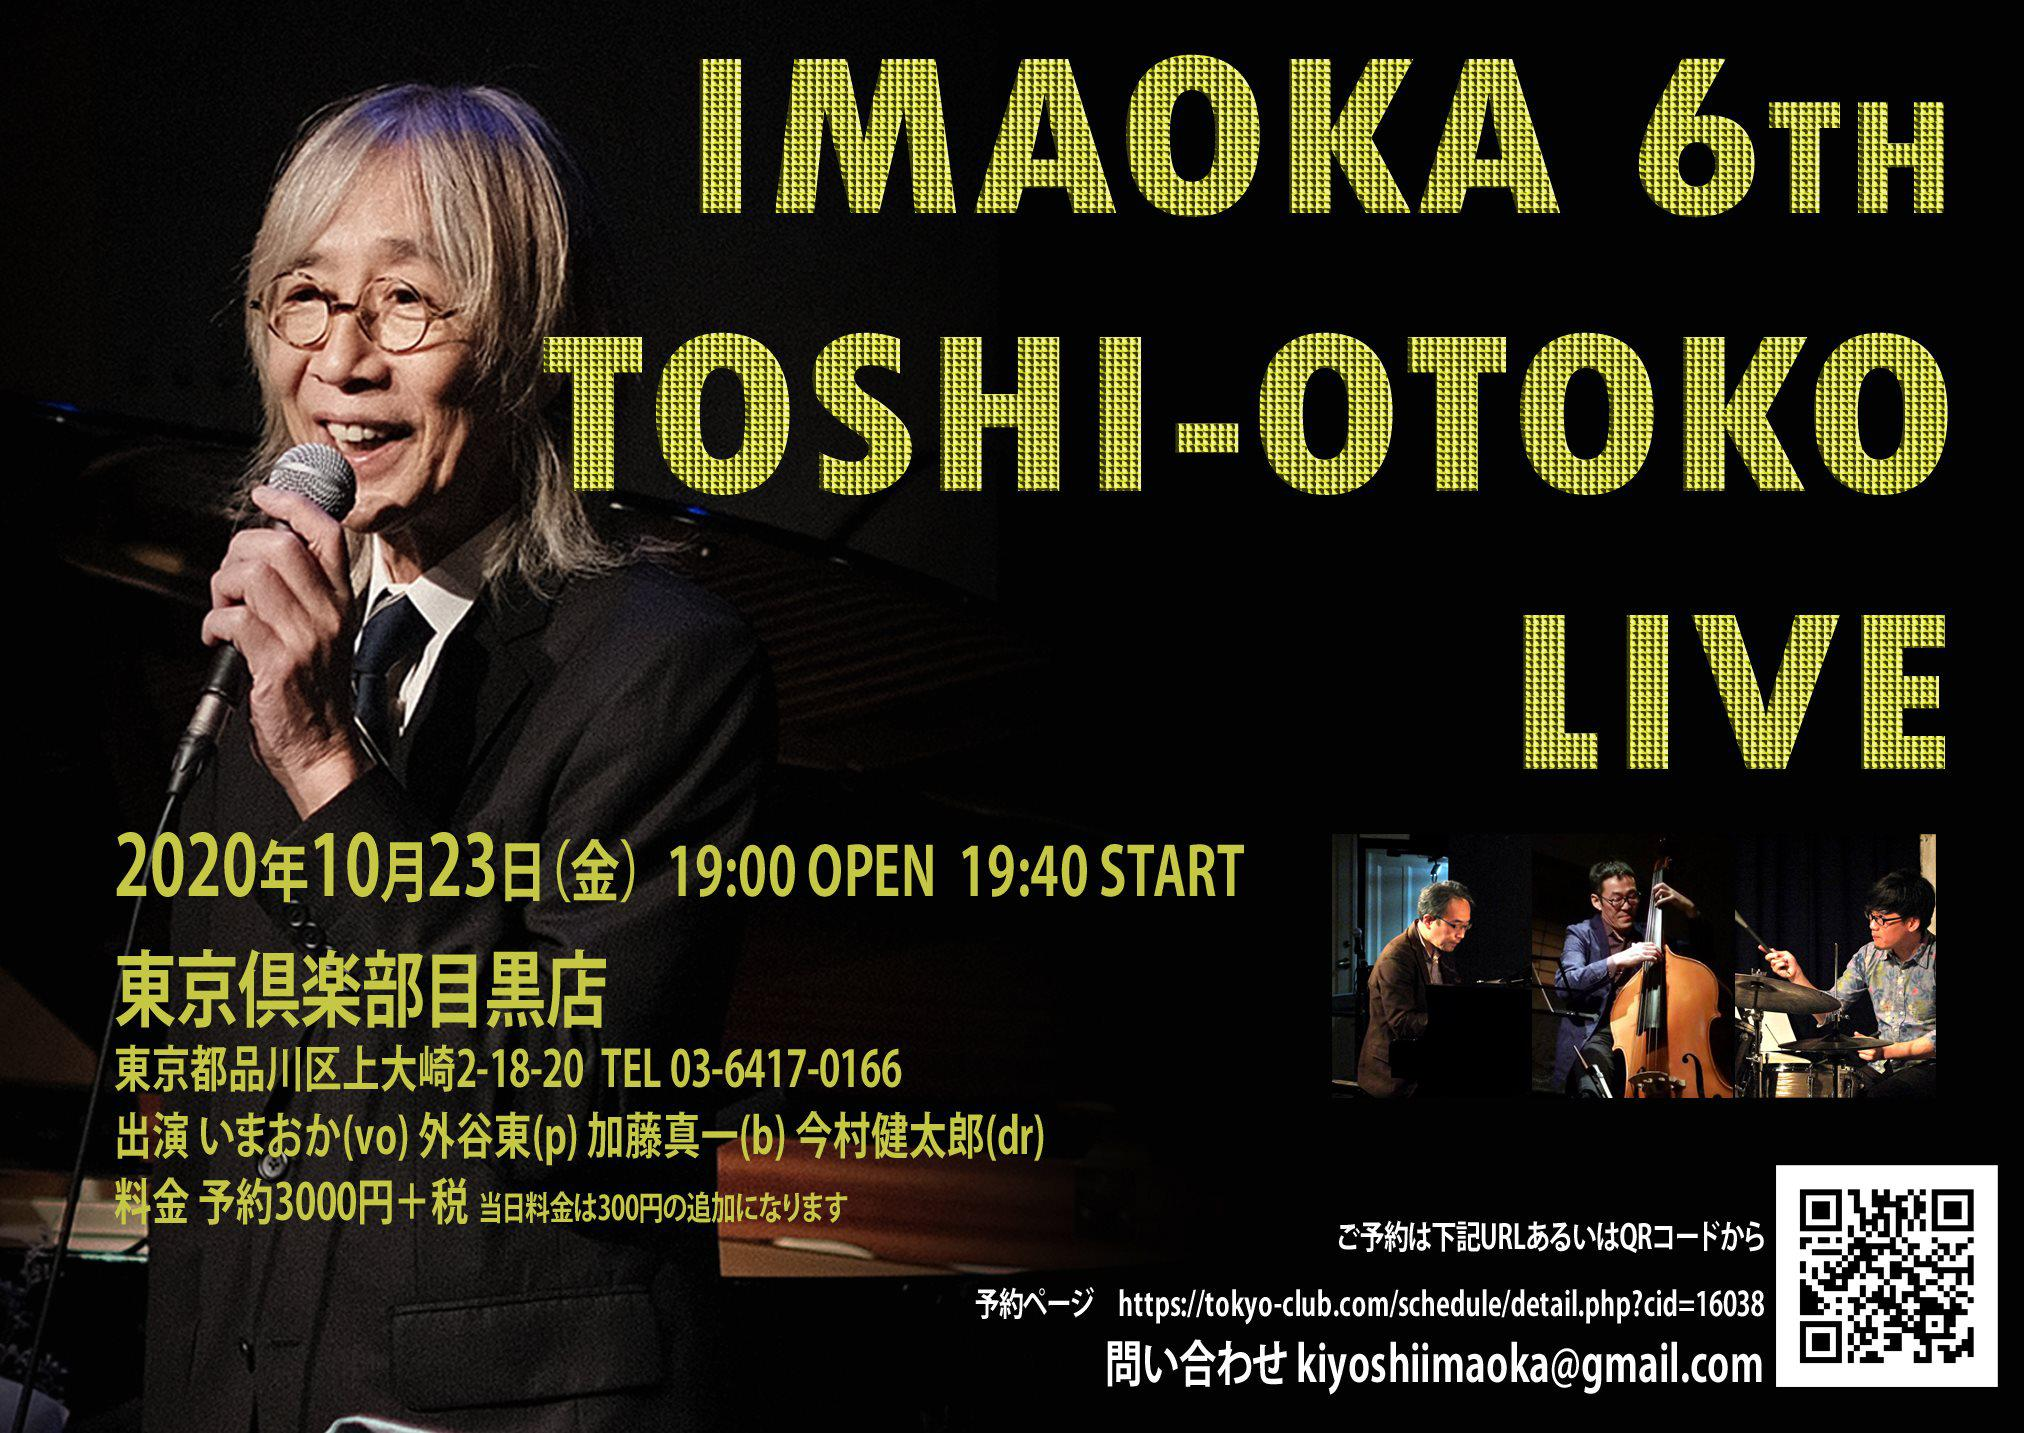 6th TOSHI-OTOKO LIVE